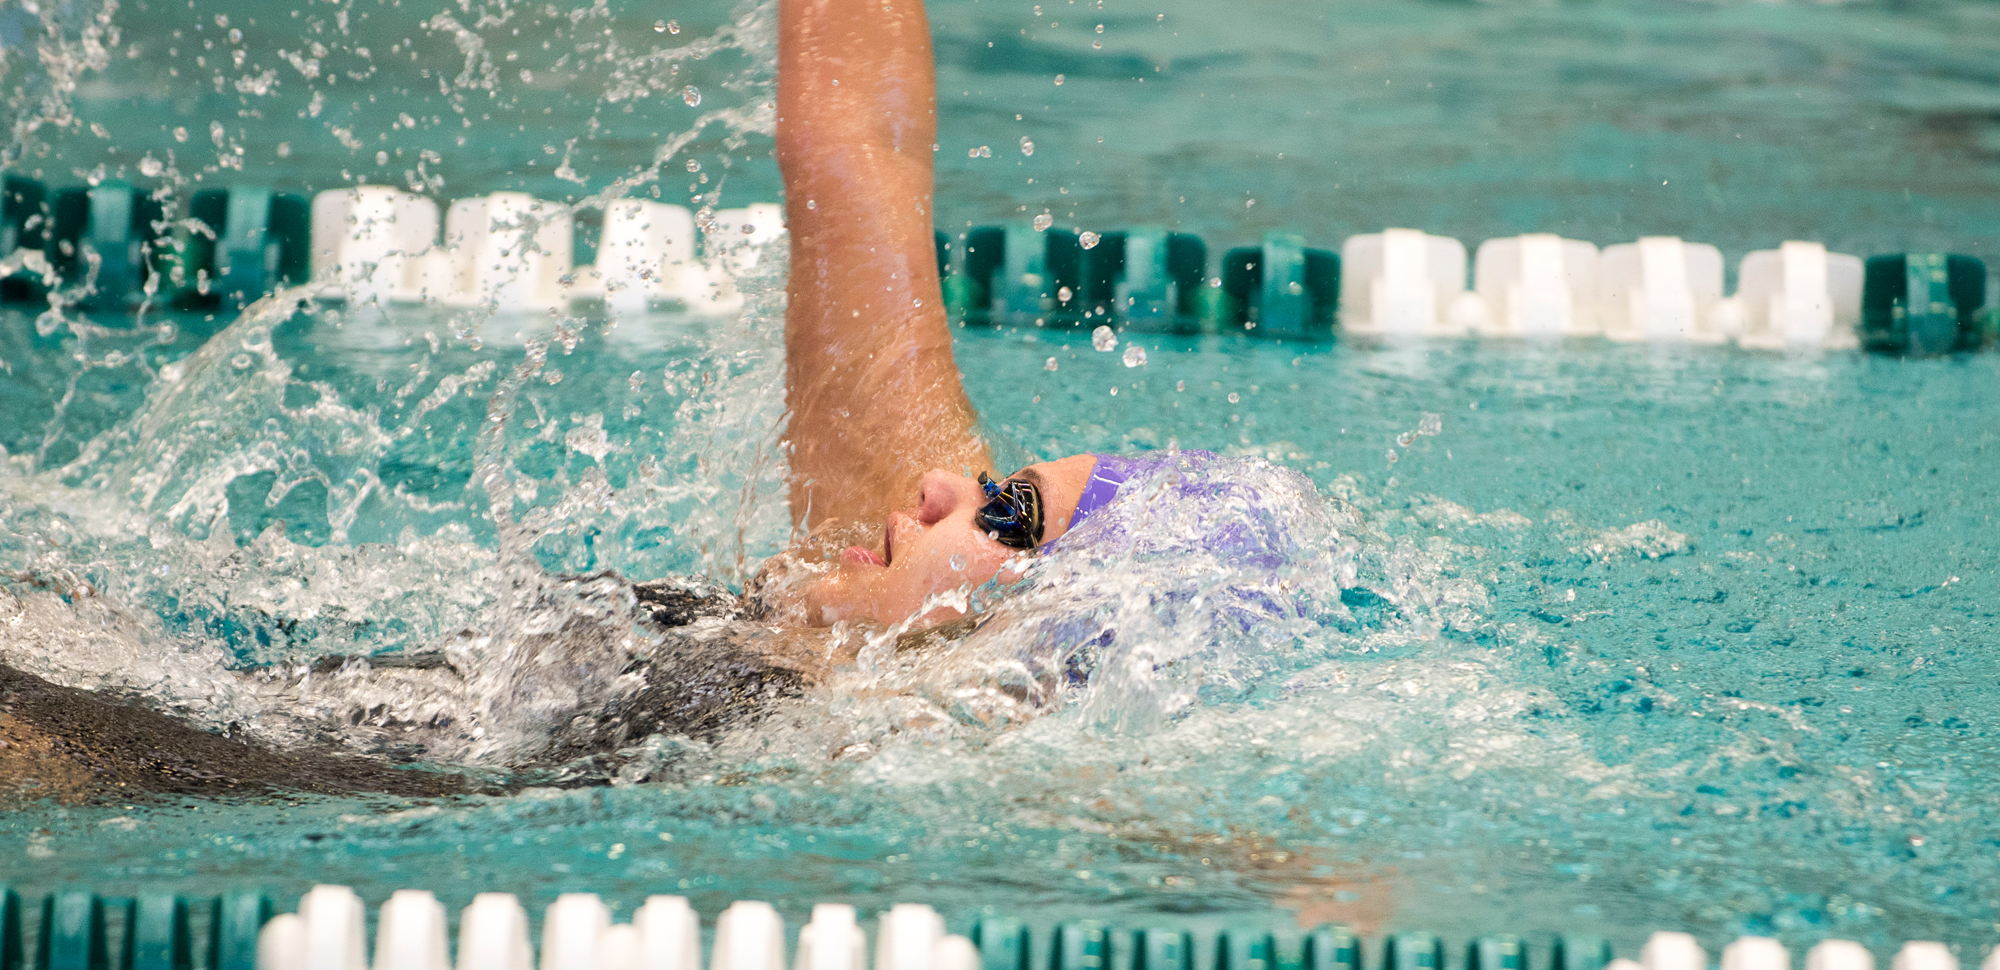 Freshman Riva Kelly was the first Royal swimmer to take an event on the day, as Scranton improved to 7-1 in dual meets with a win at Misericordia on Saturday.